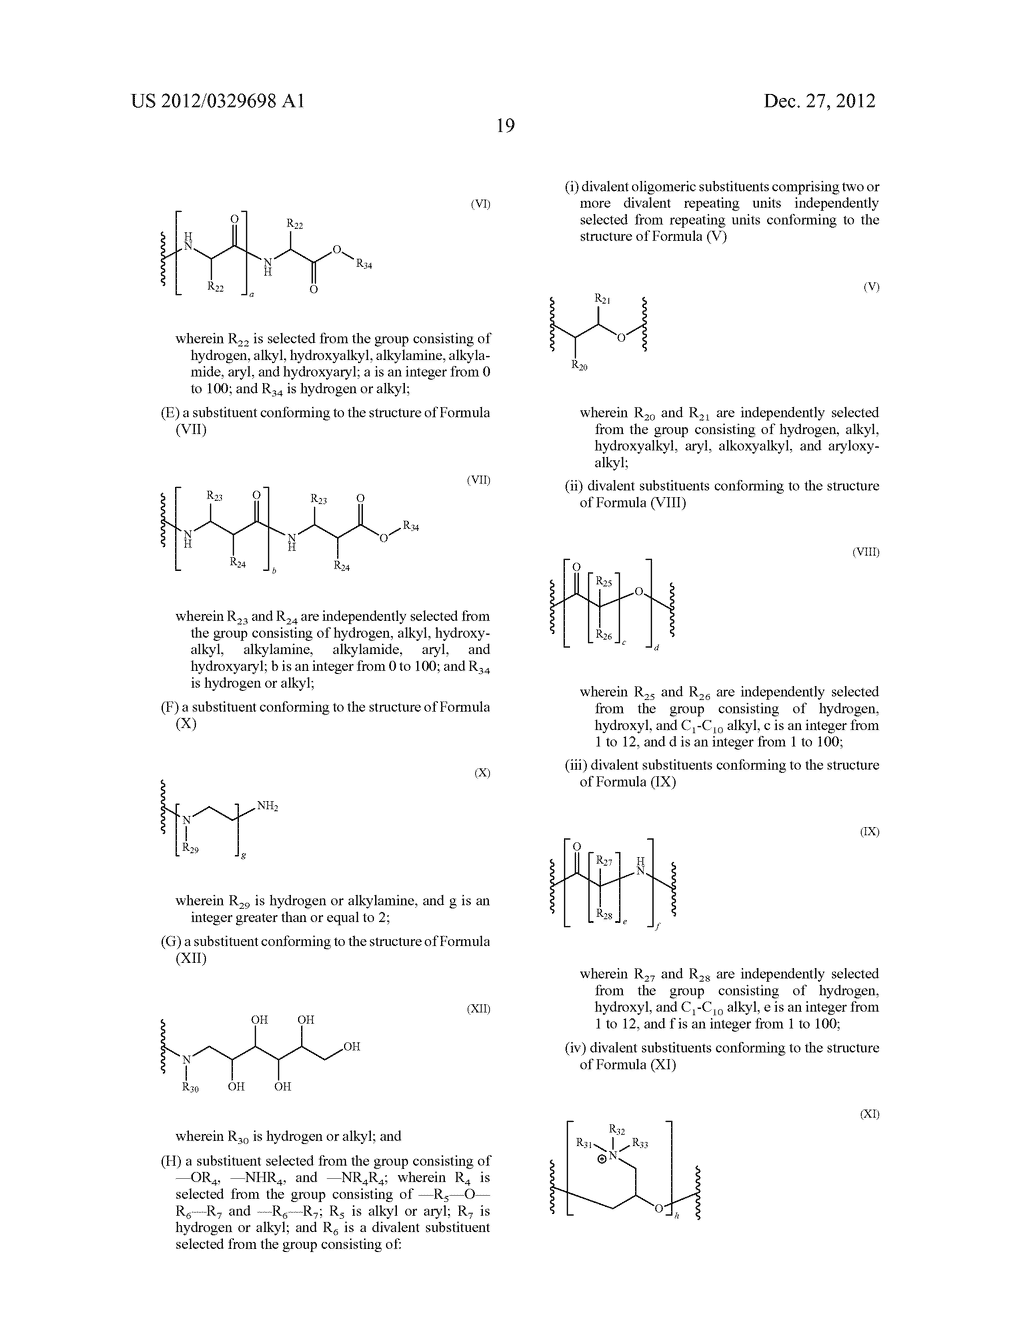 OPTICAL BRIGHTENERS AND COMPOSITIONS COMPRISING THE SAME - diagram, schematic, and image 20